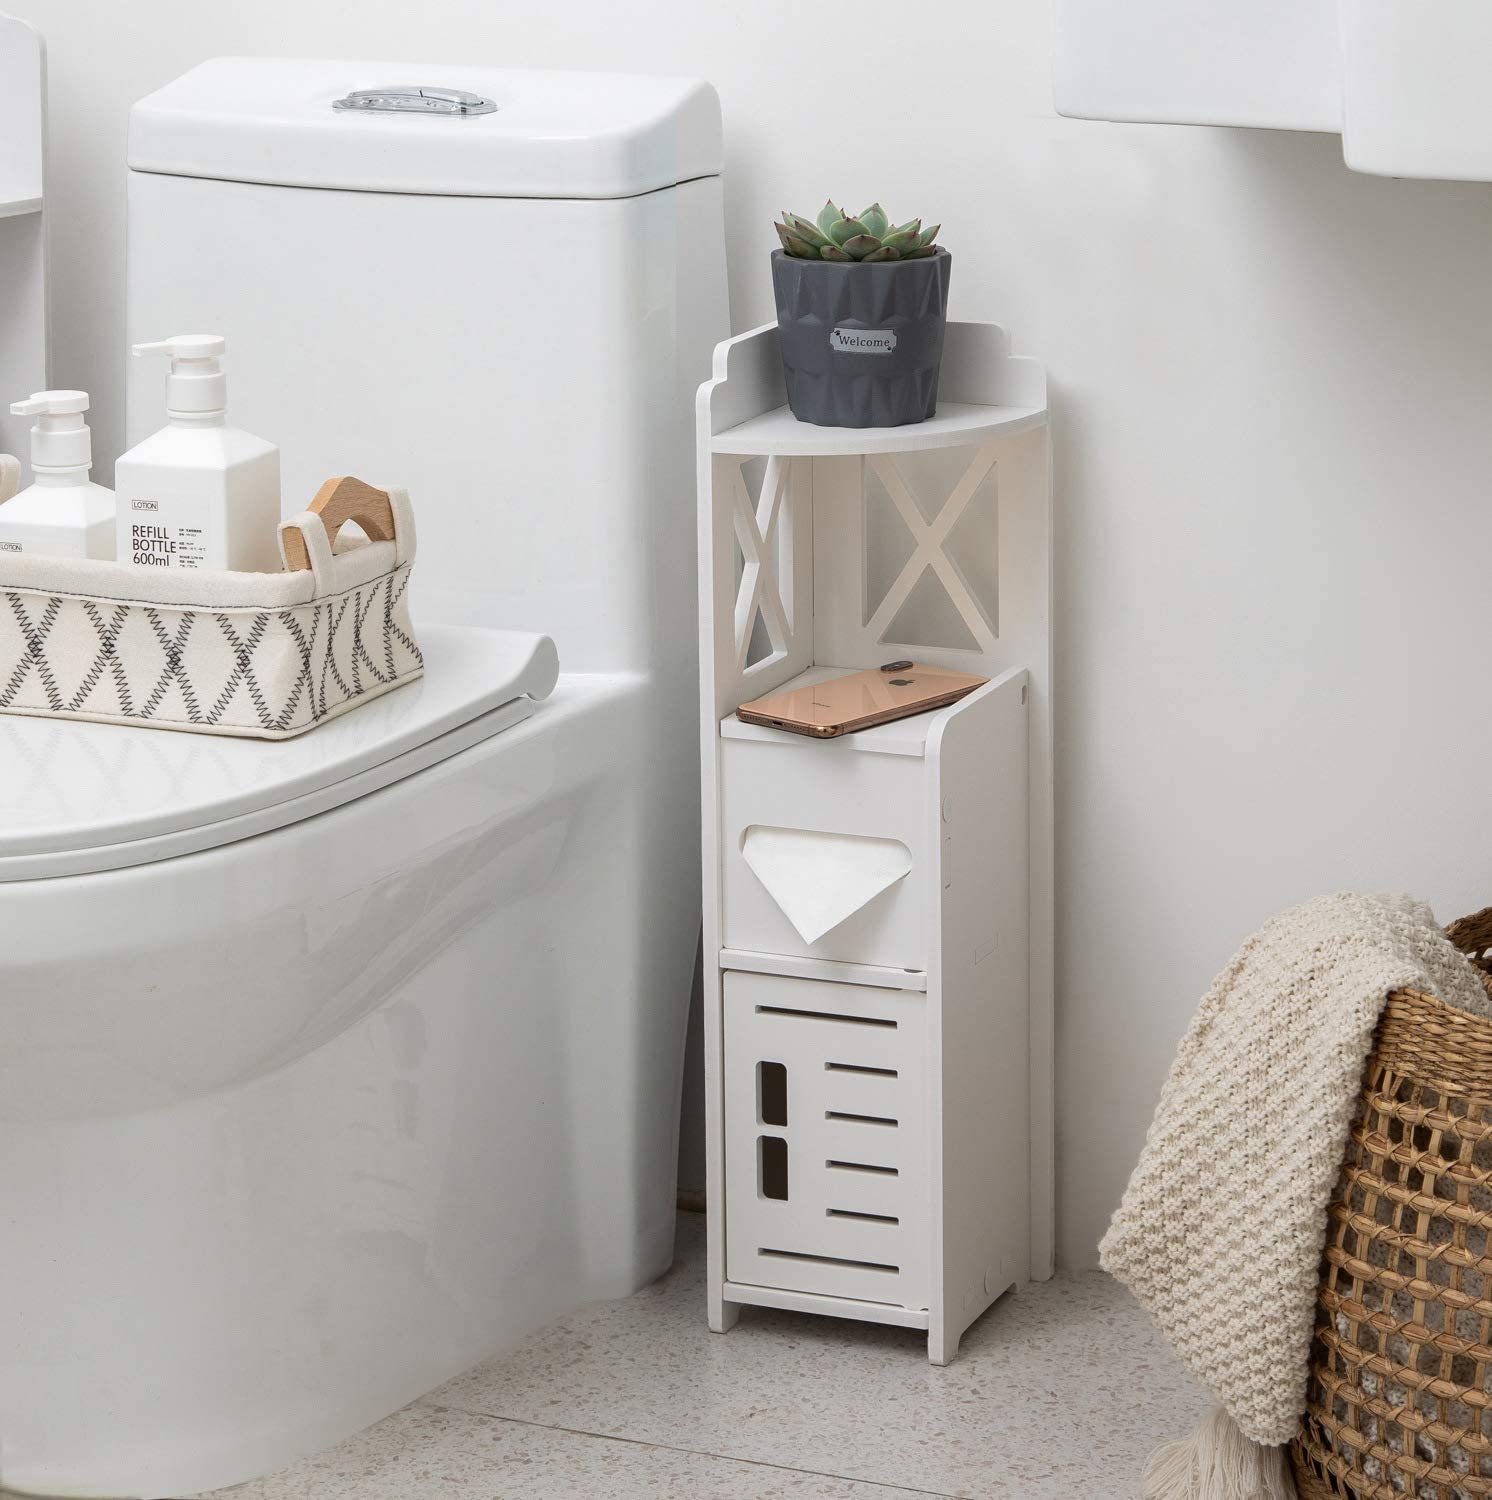 Beside Toilet Storage Narrow Nightstand For Bedroom Slim Bathroom Cabinet Waterproof For Half Bath Corner Storage Cabinet With Doors For Small Spaces Tp Holder For Small Bathroom White By Tuoxinem Kitchen Dining